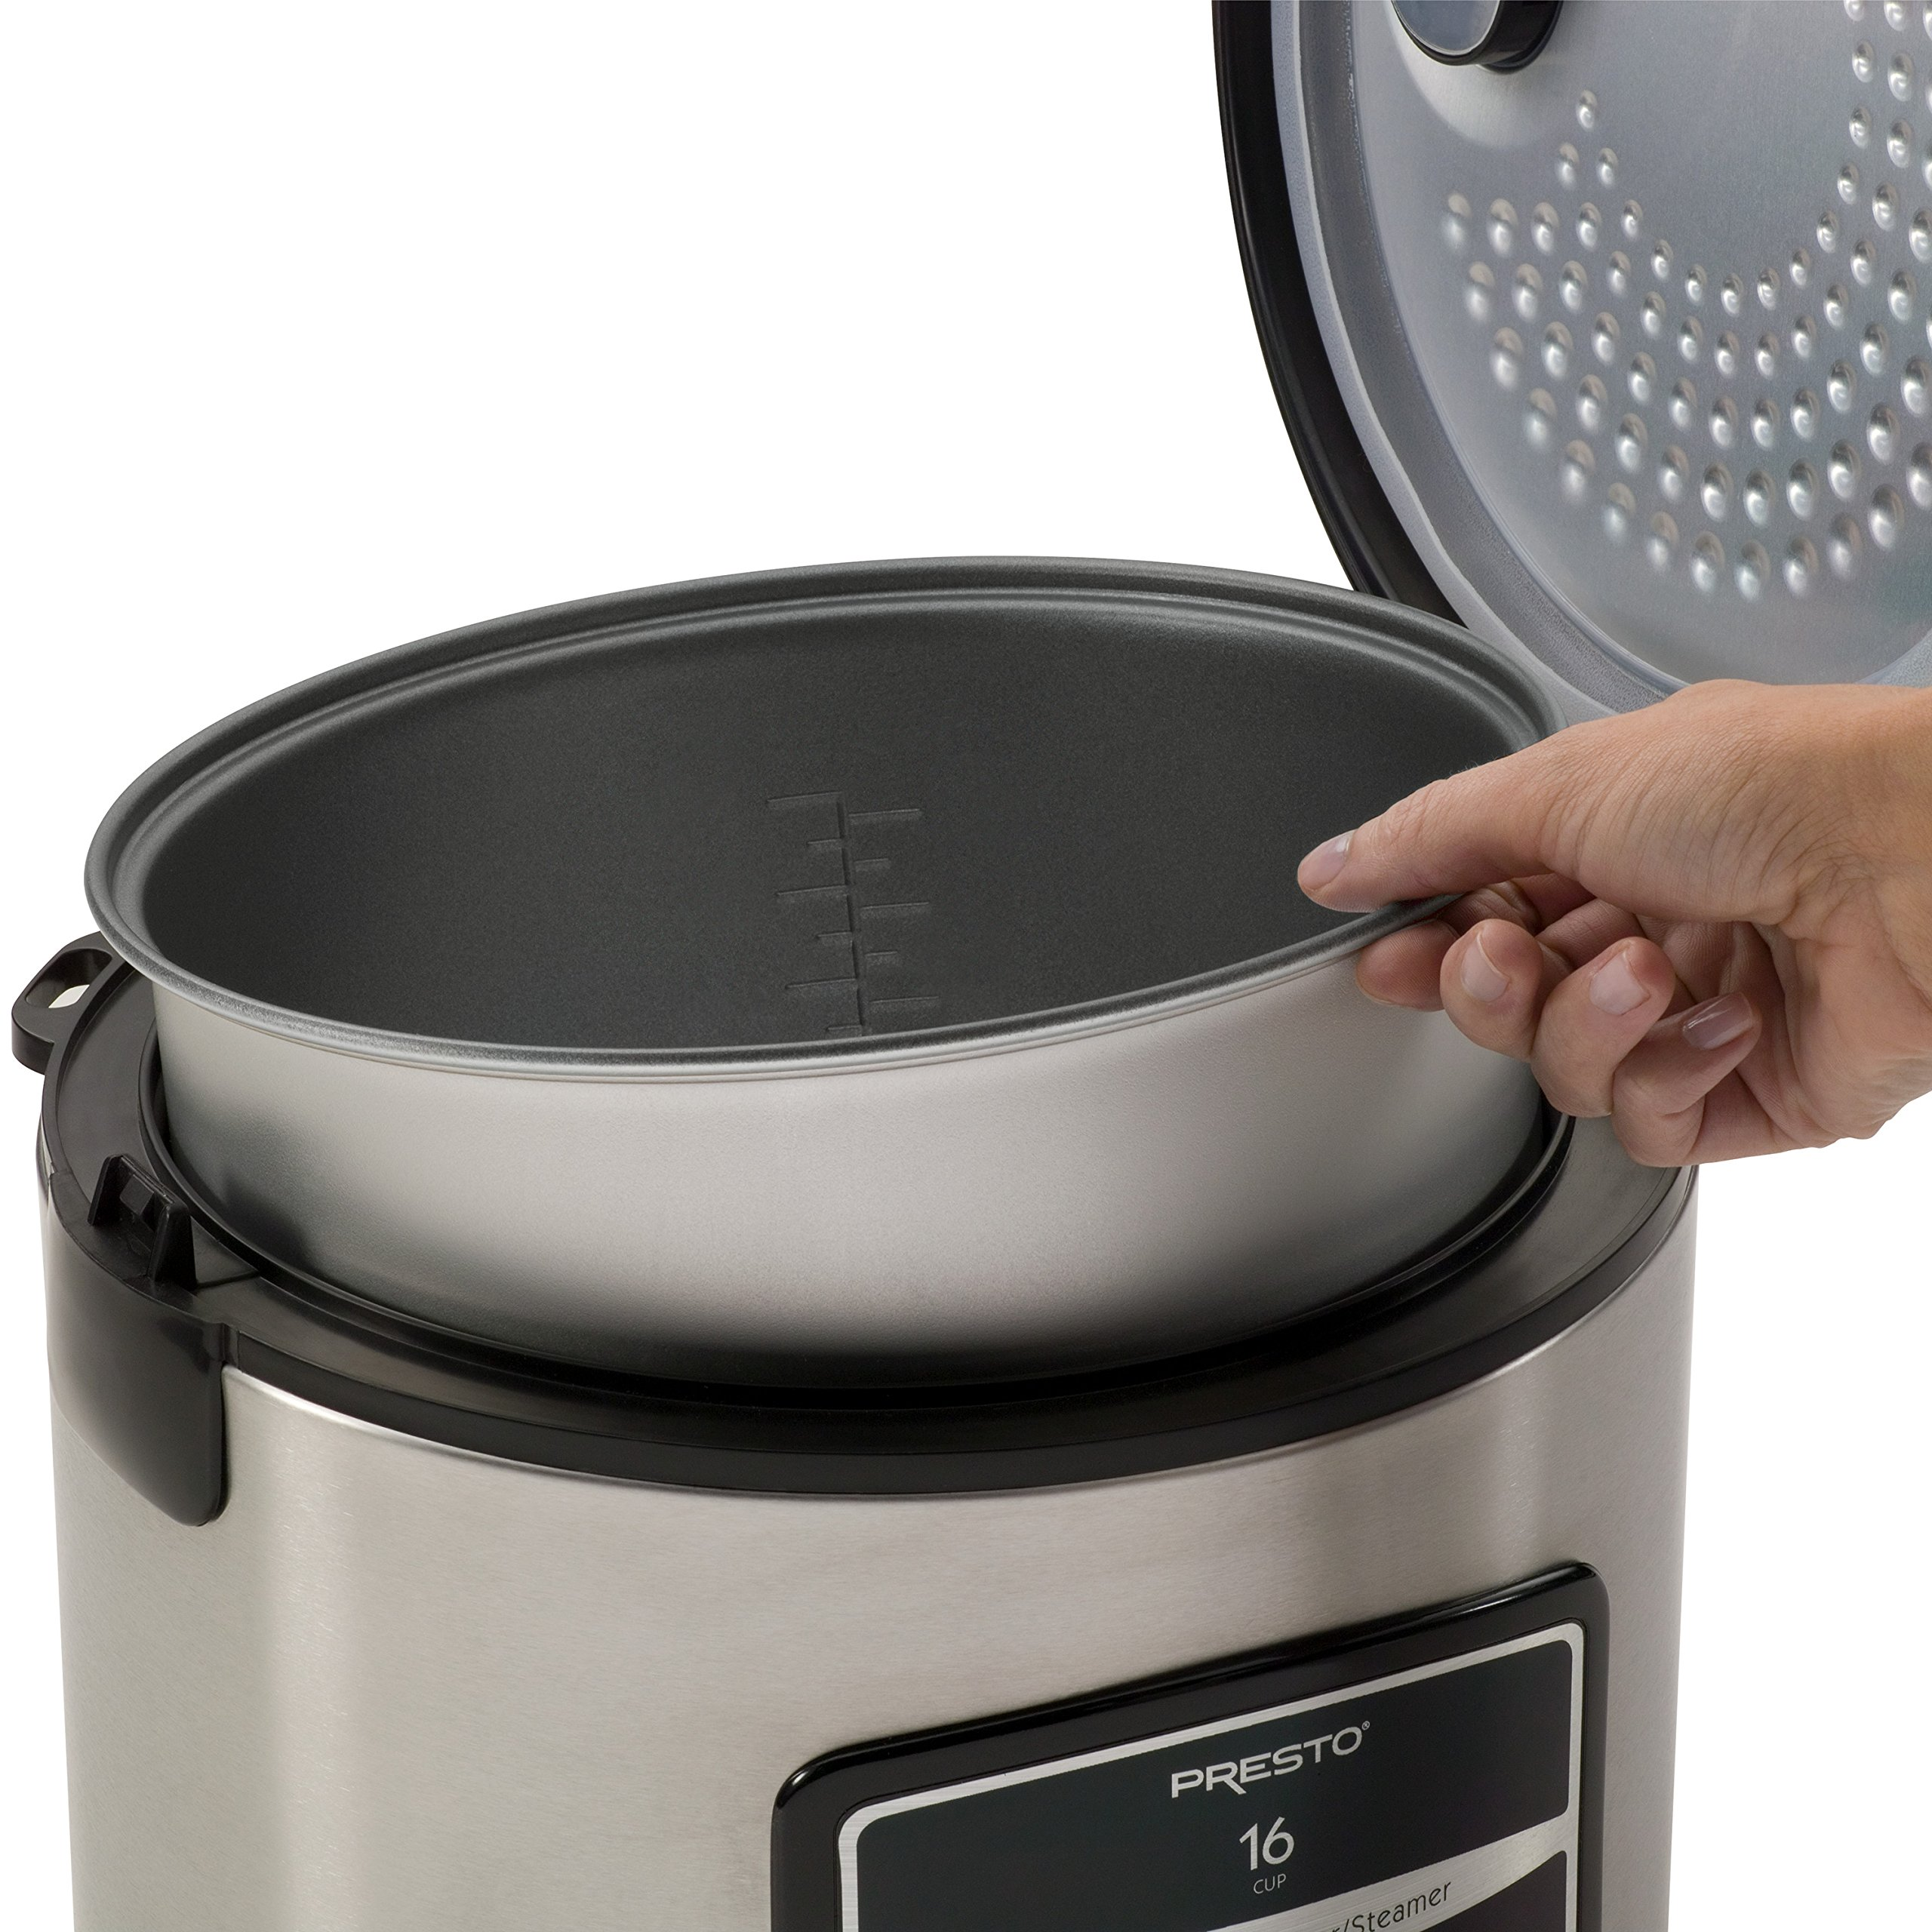 Presto 05813 16-Cup Digital Stainless Steel Rice Cooker/Steamer